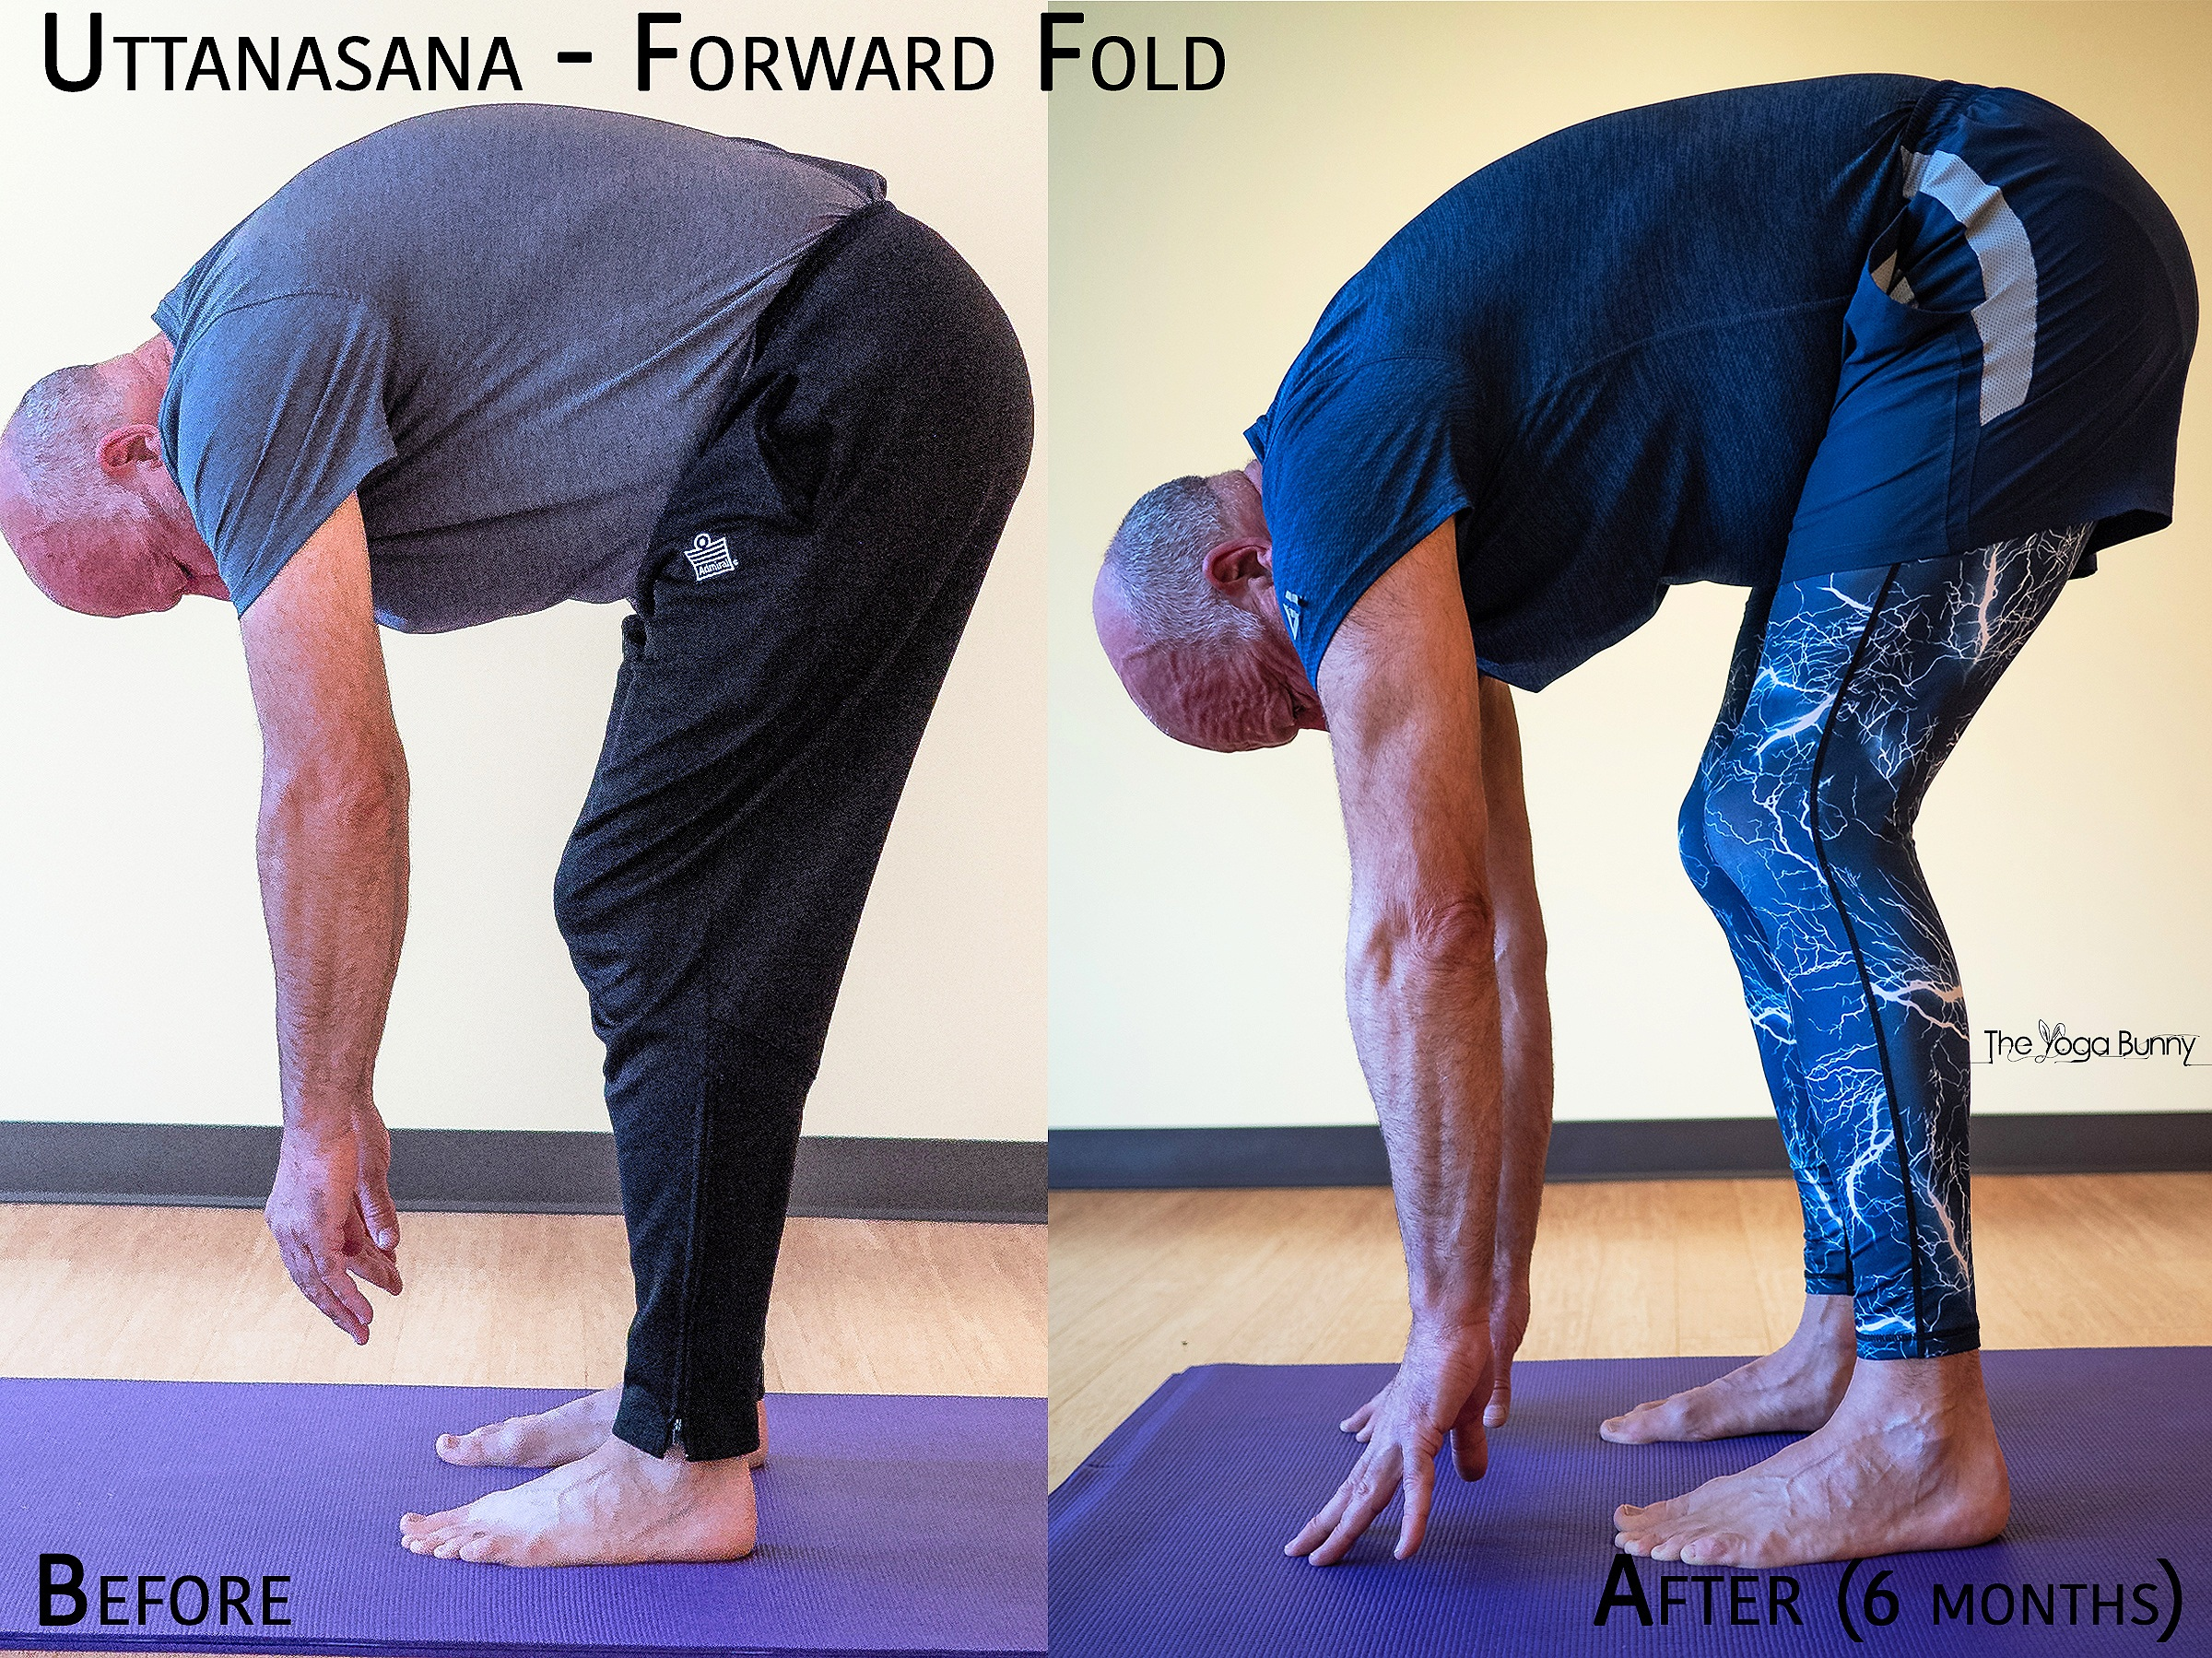 Uttanasana - Forward Fold